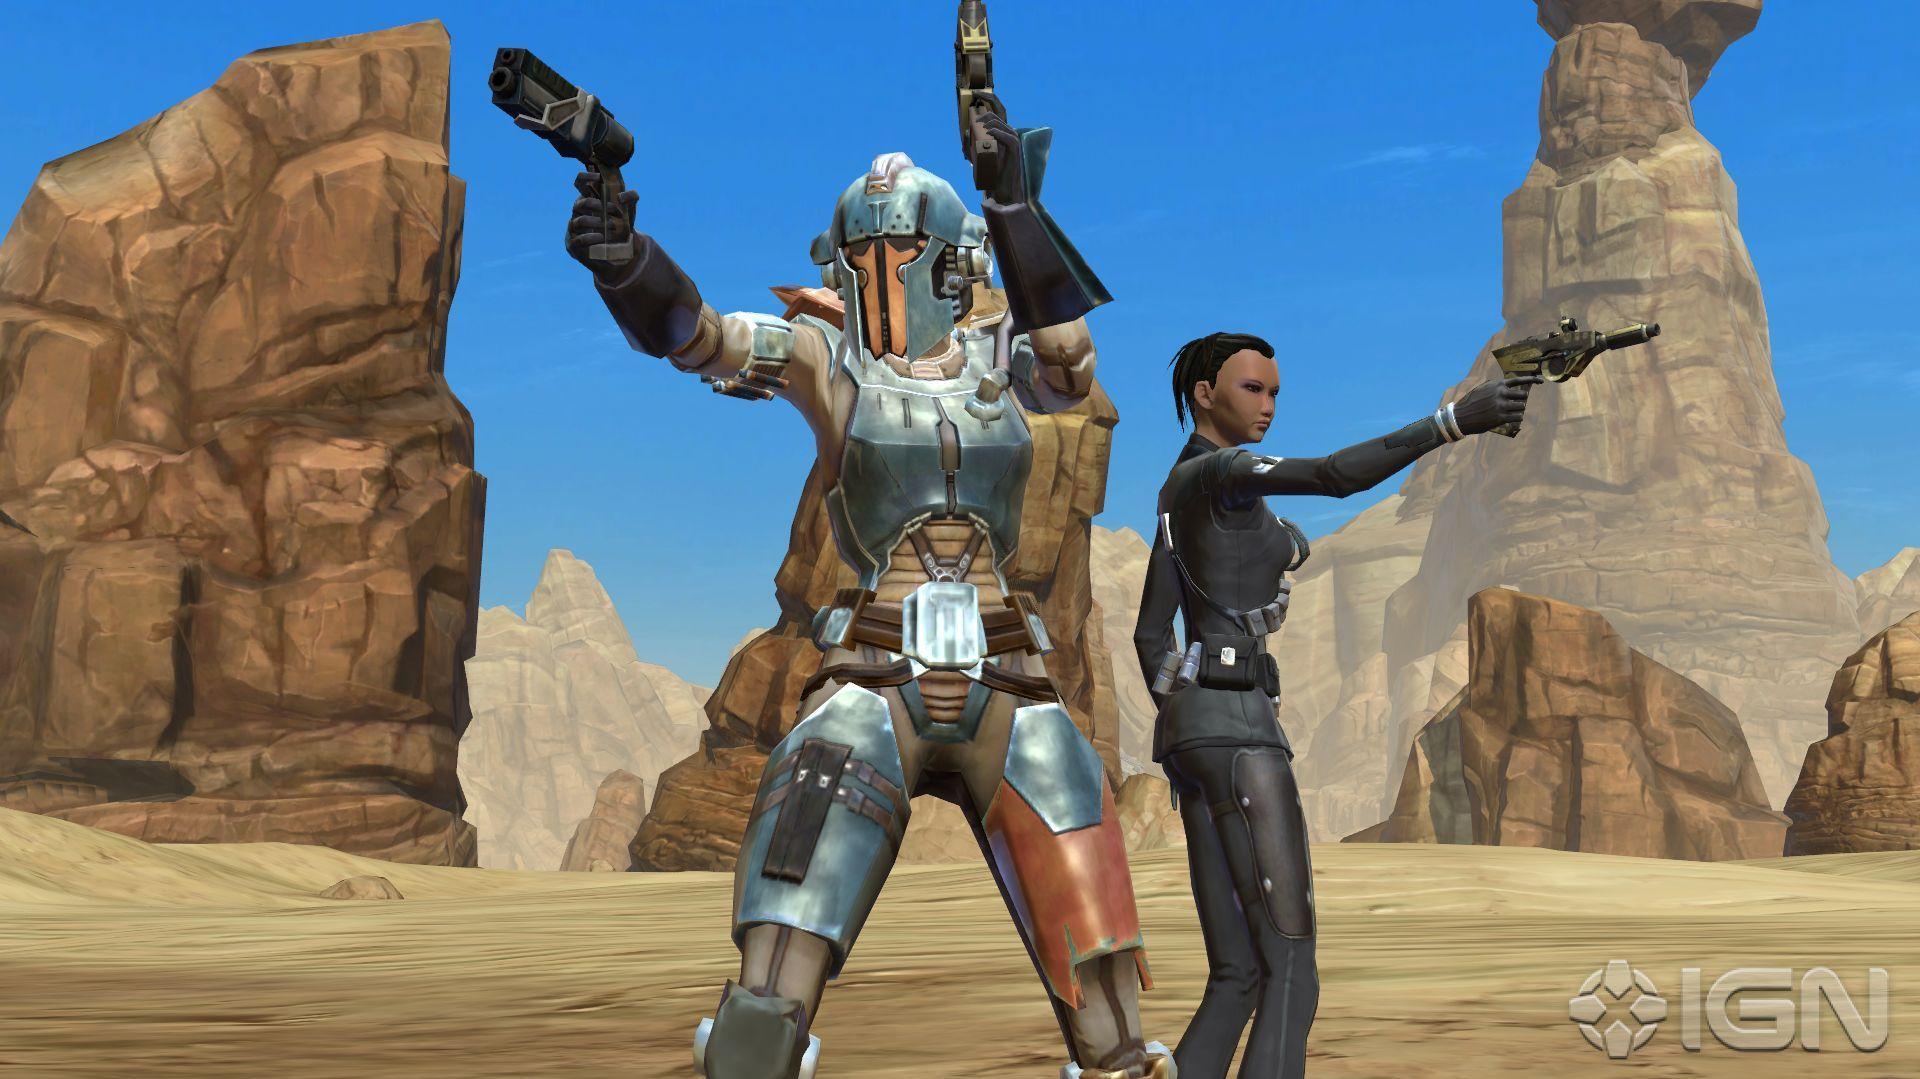 NEWS Bioware May Take The Old Republic Free-To-Play